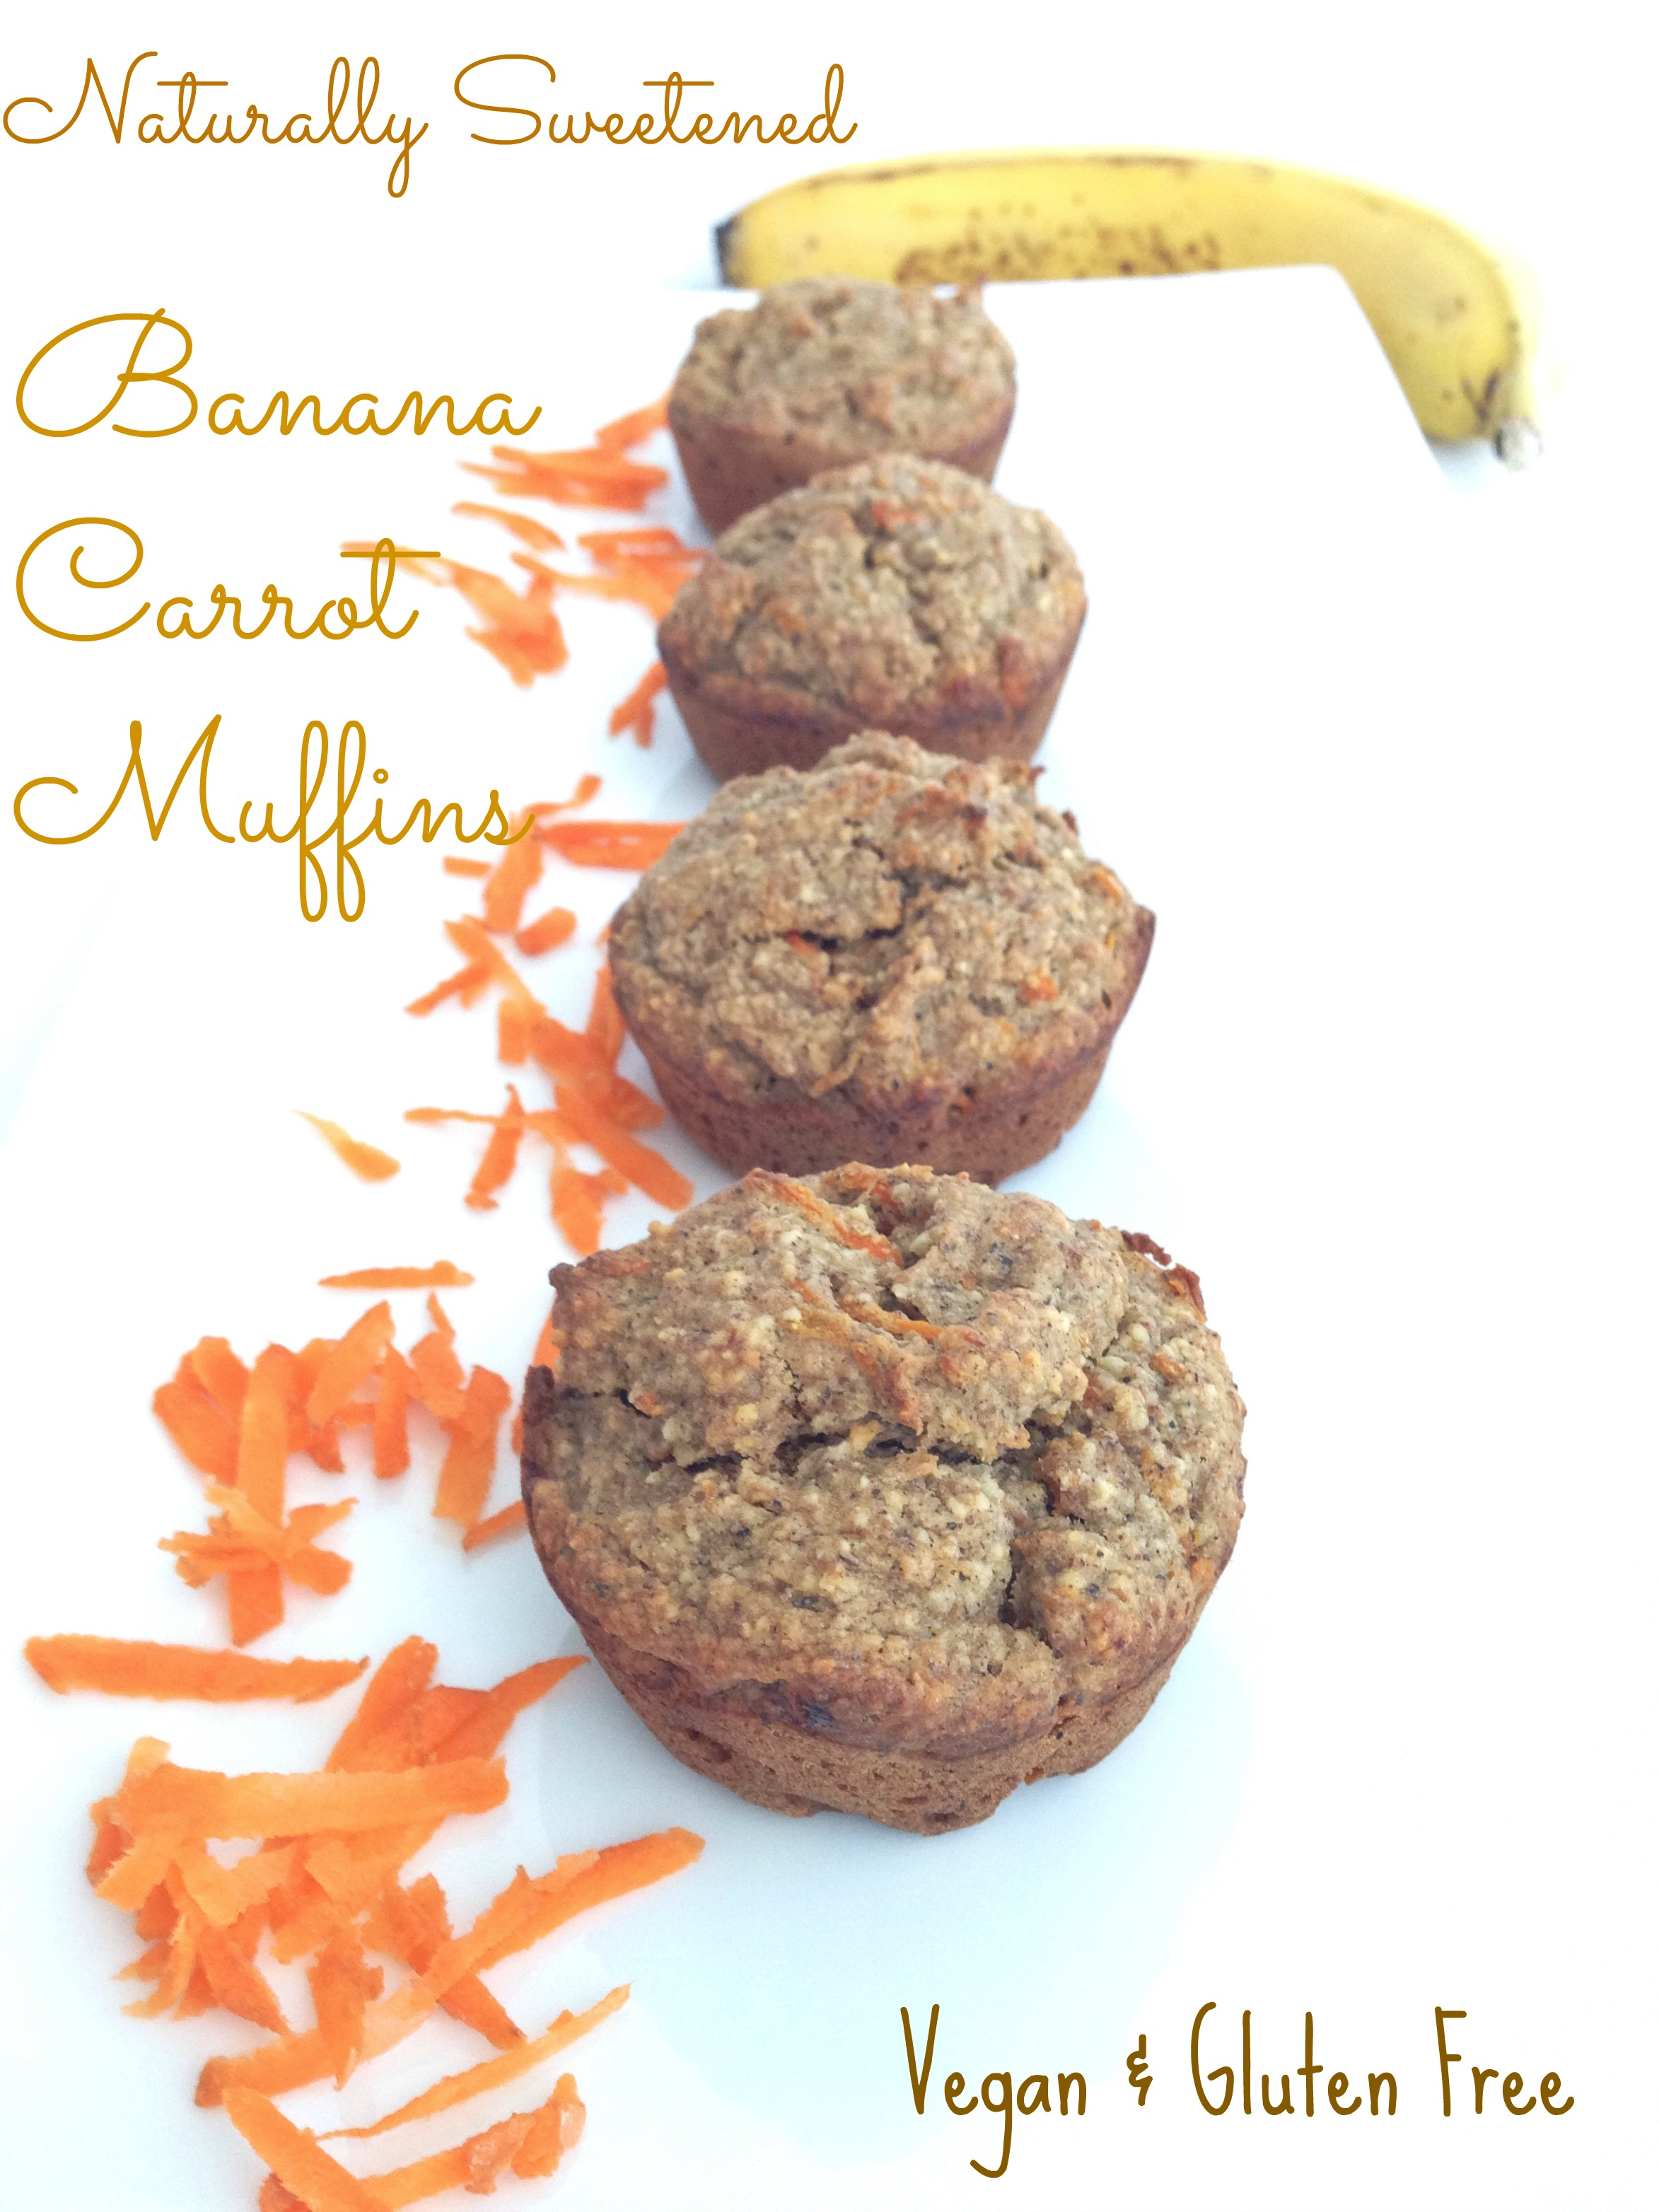 naturally sweetened banana carrot muffins gluten free and vegan brunch